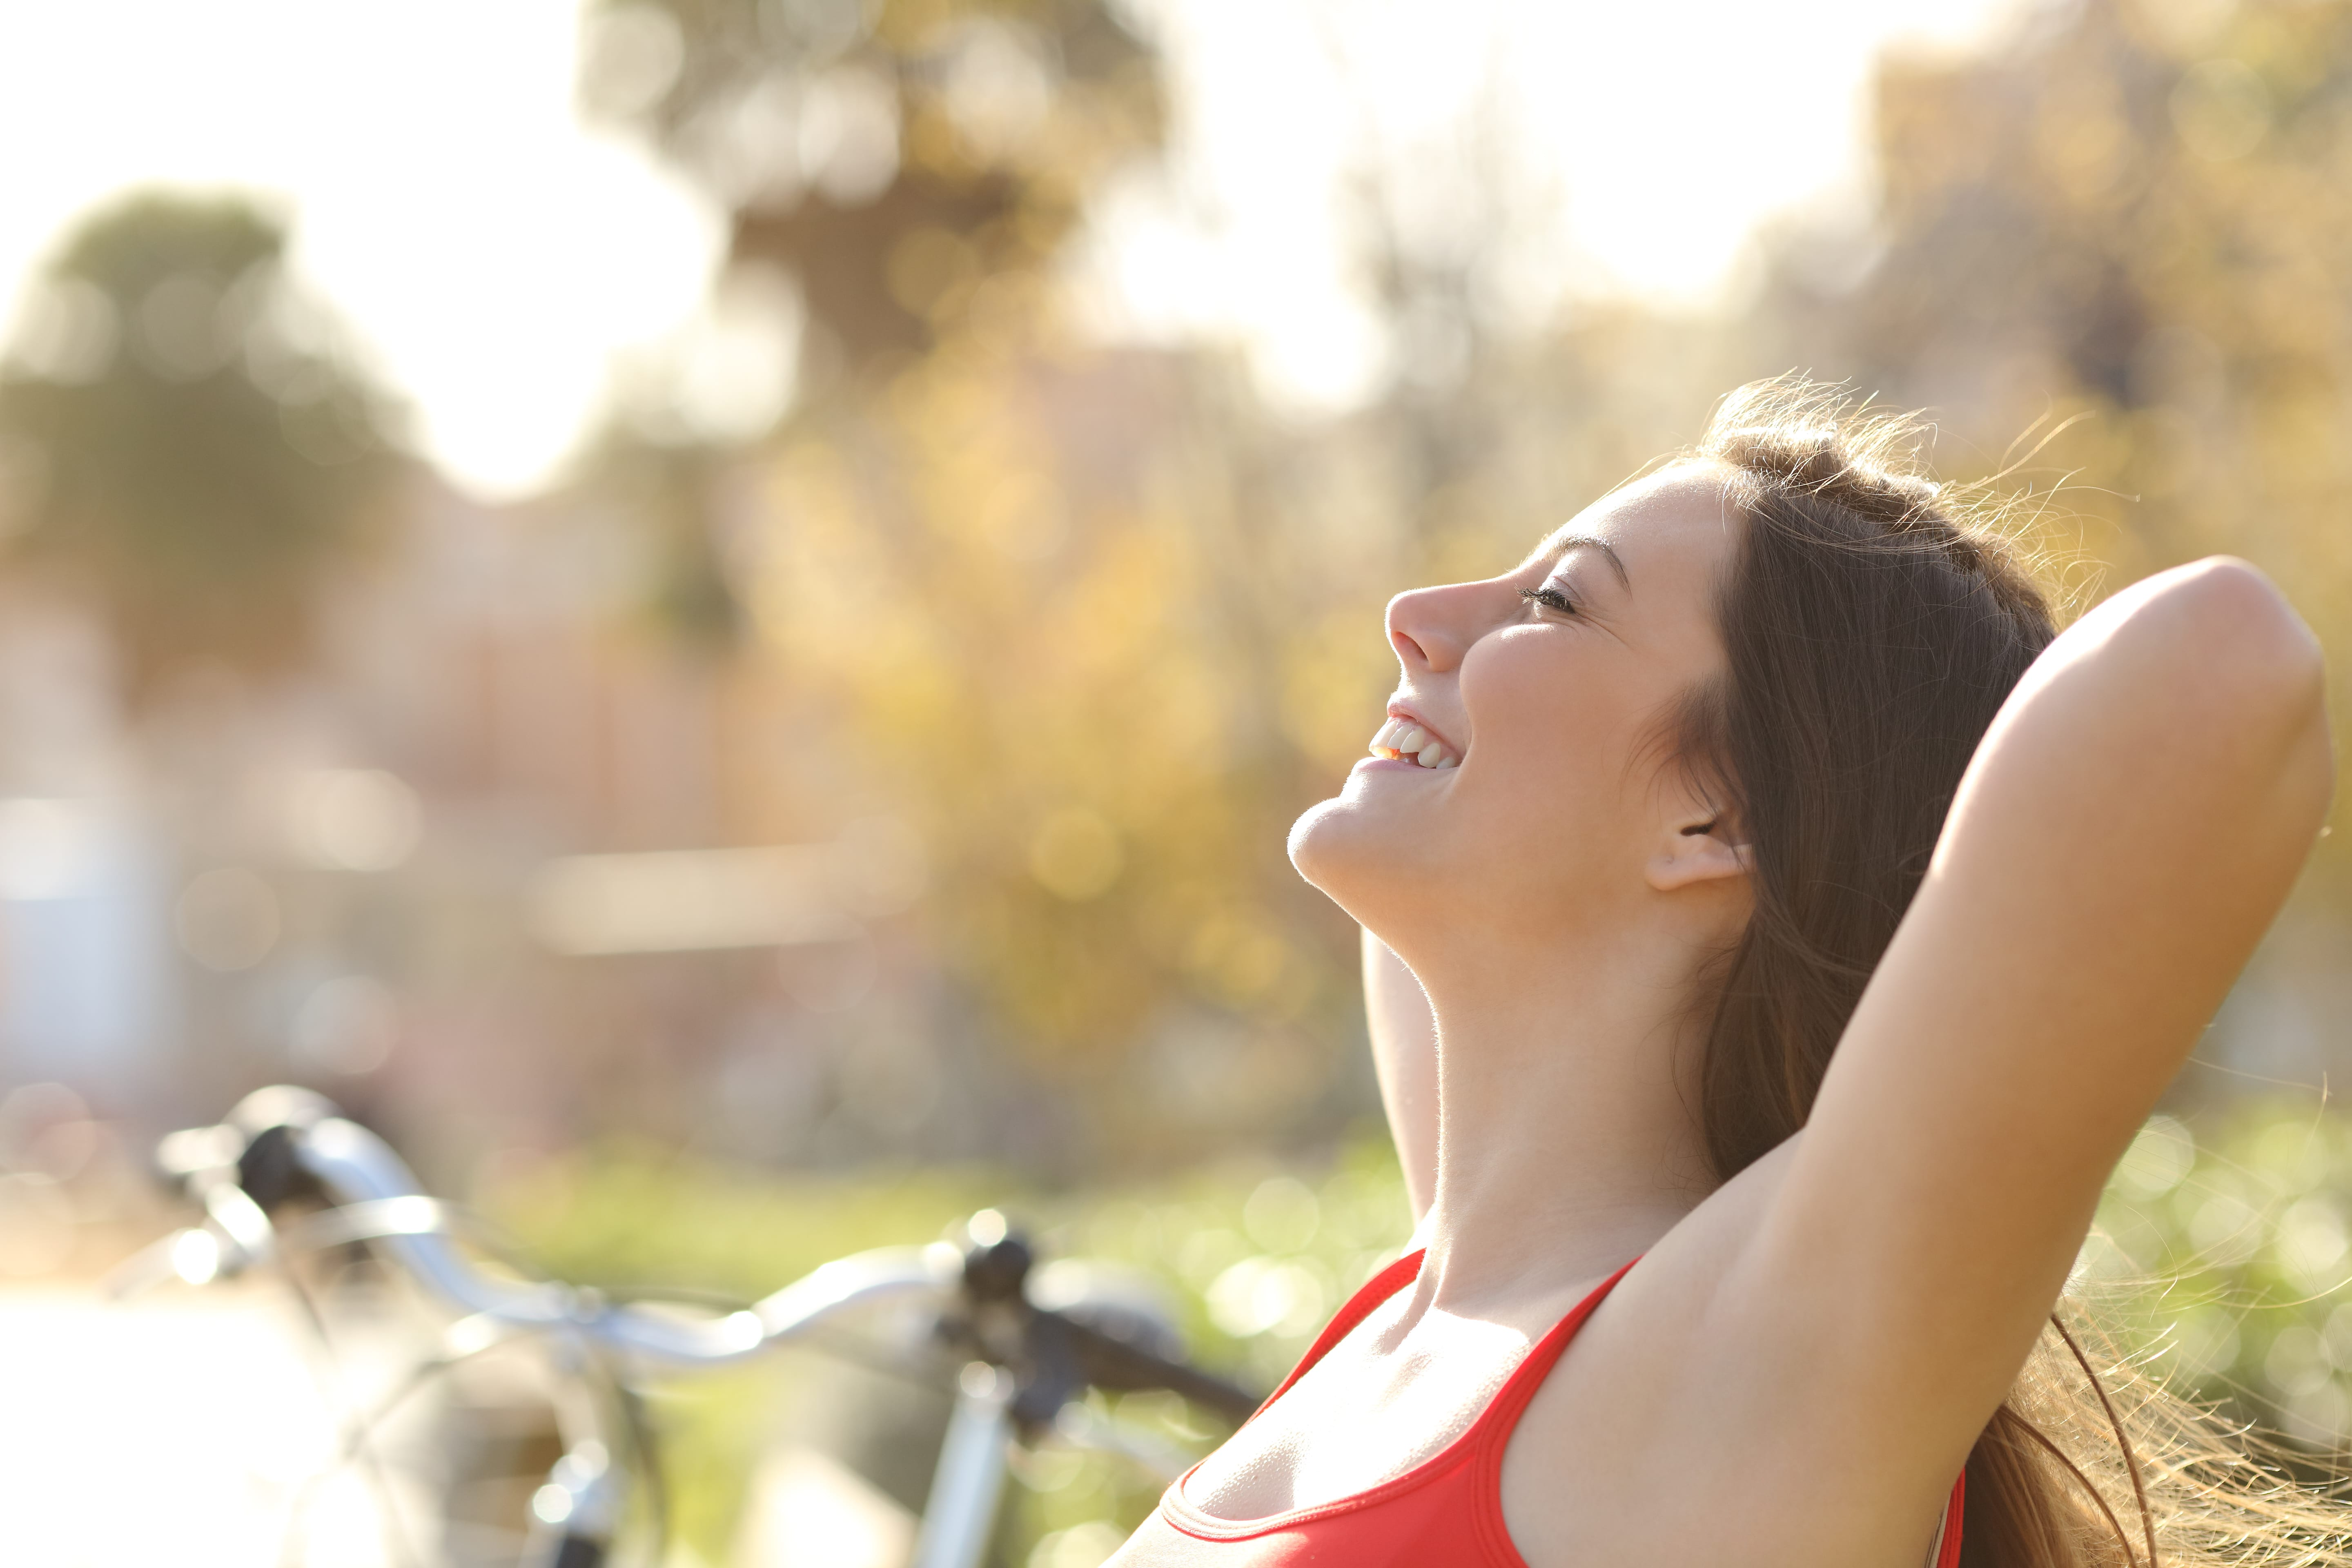 In a expression of freedom and happiness, a woman is smiling with both arms up. At the background, there is a blurred bicycle and a nature landscape.